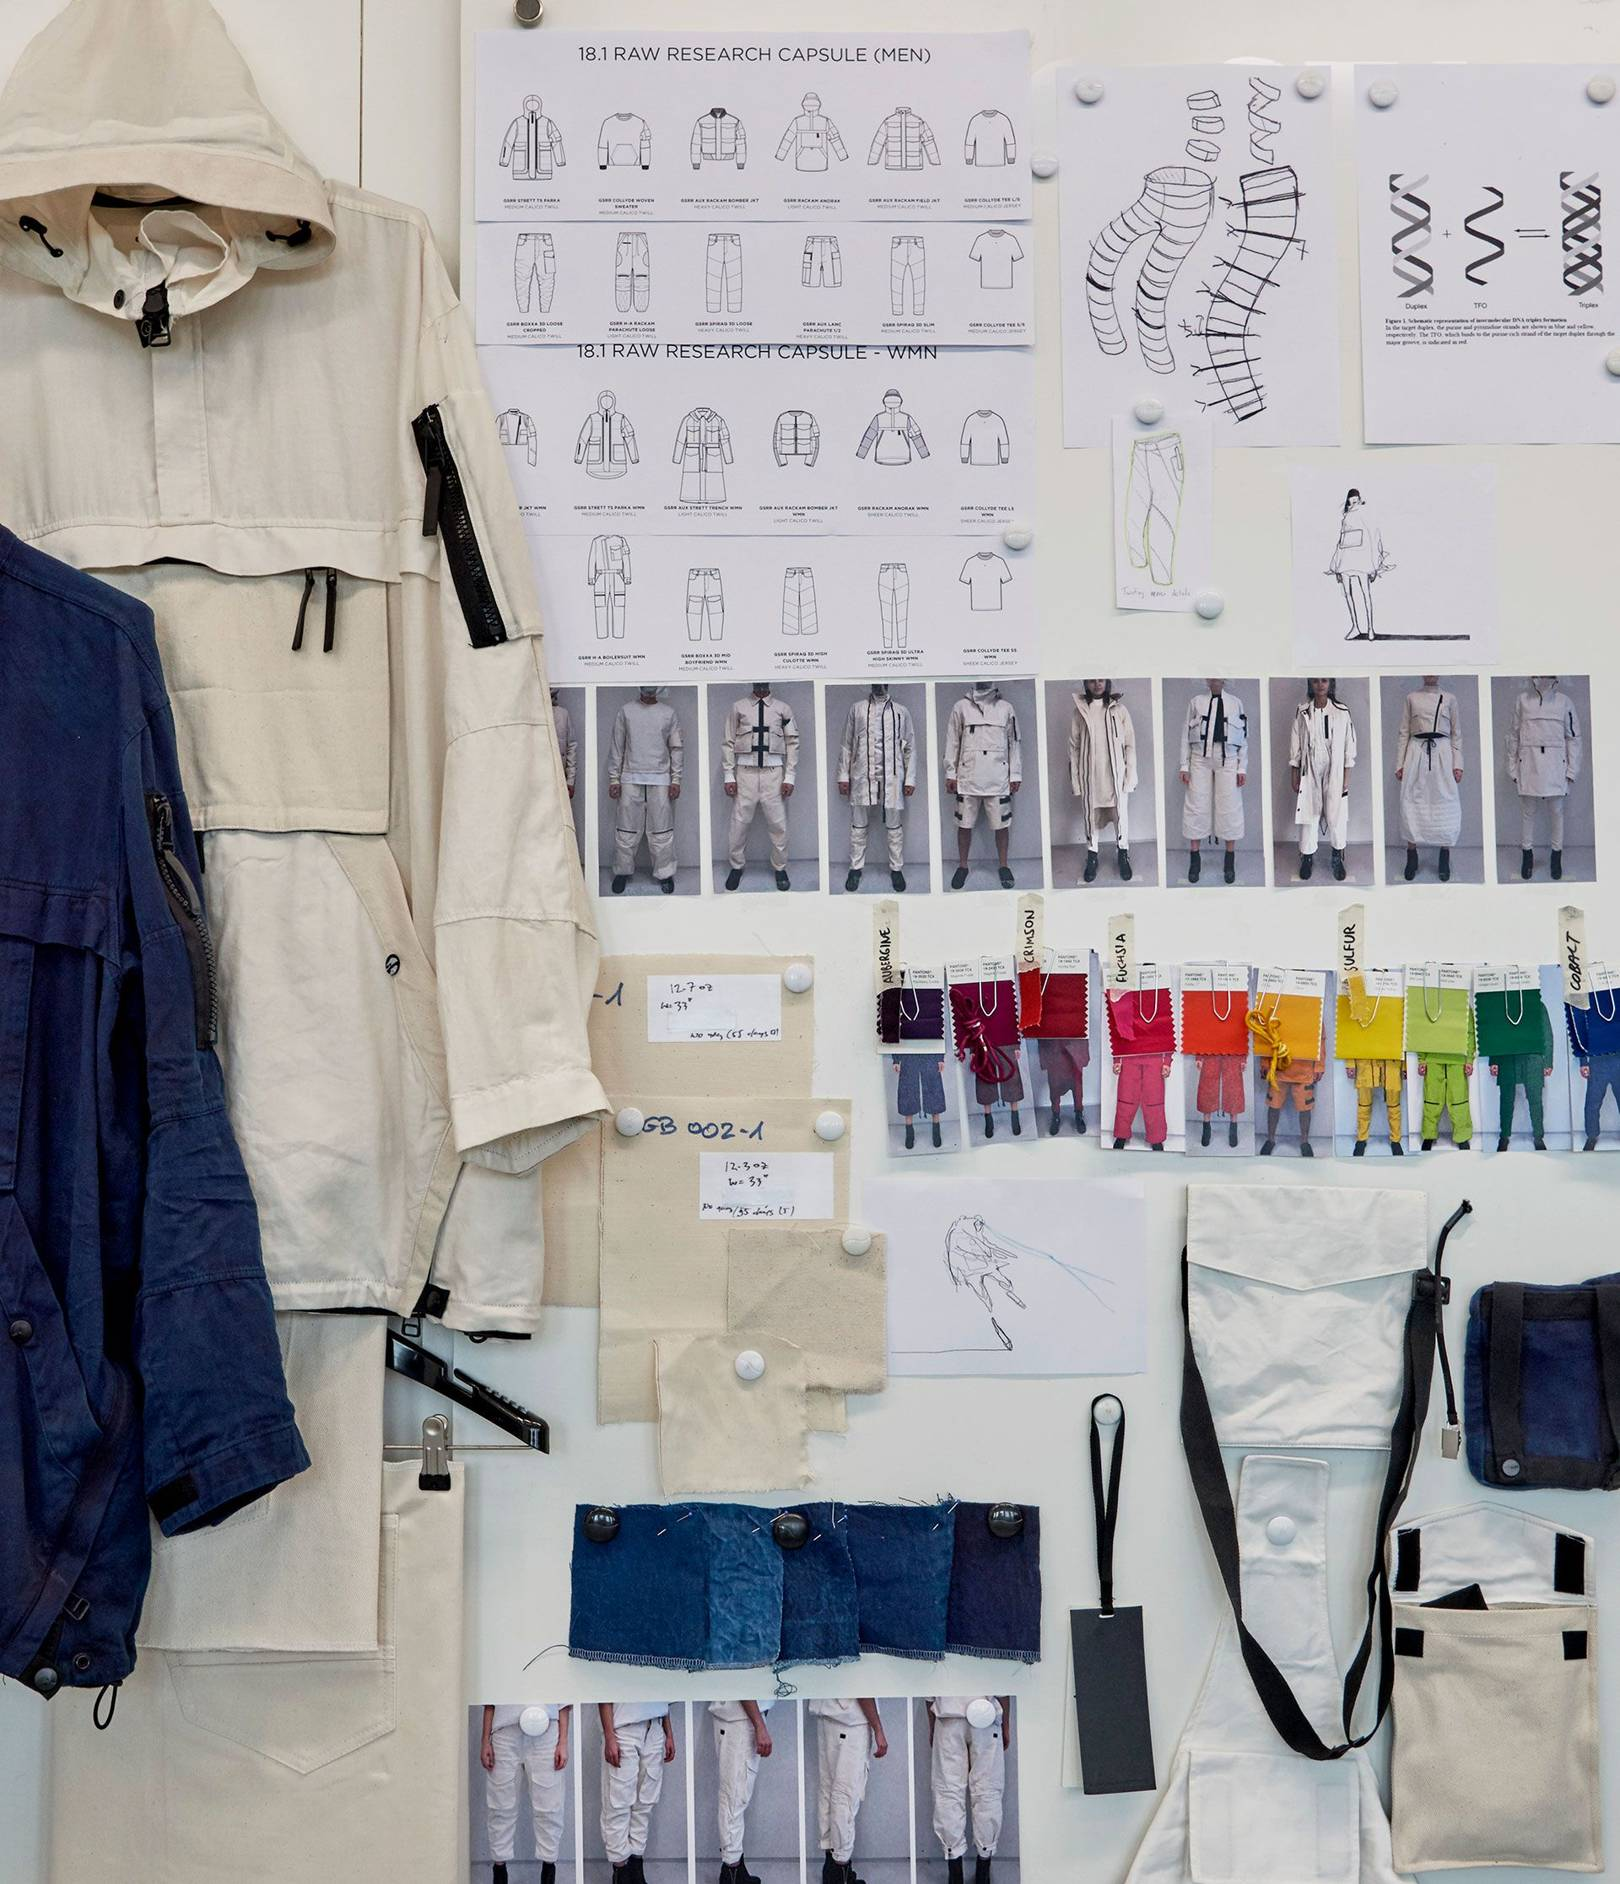 2a6363f4c77 How Aitor Throup Is Fusing Fashion With Art - G-Star Raw Research  Womenswear Collection Interview | British Vogue